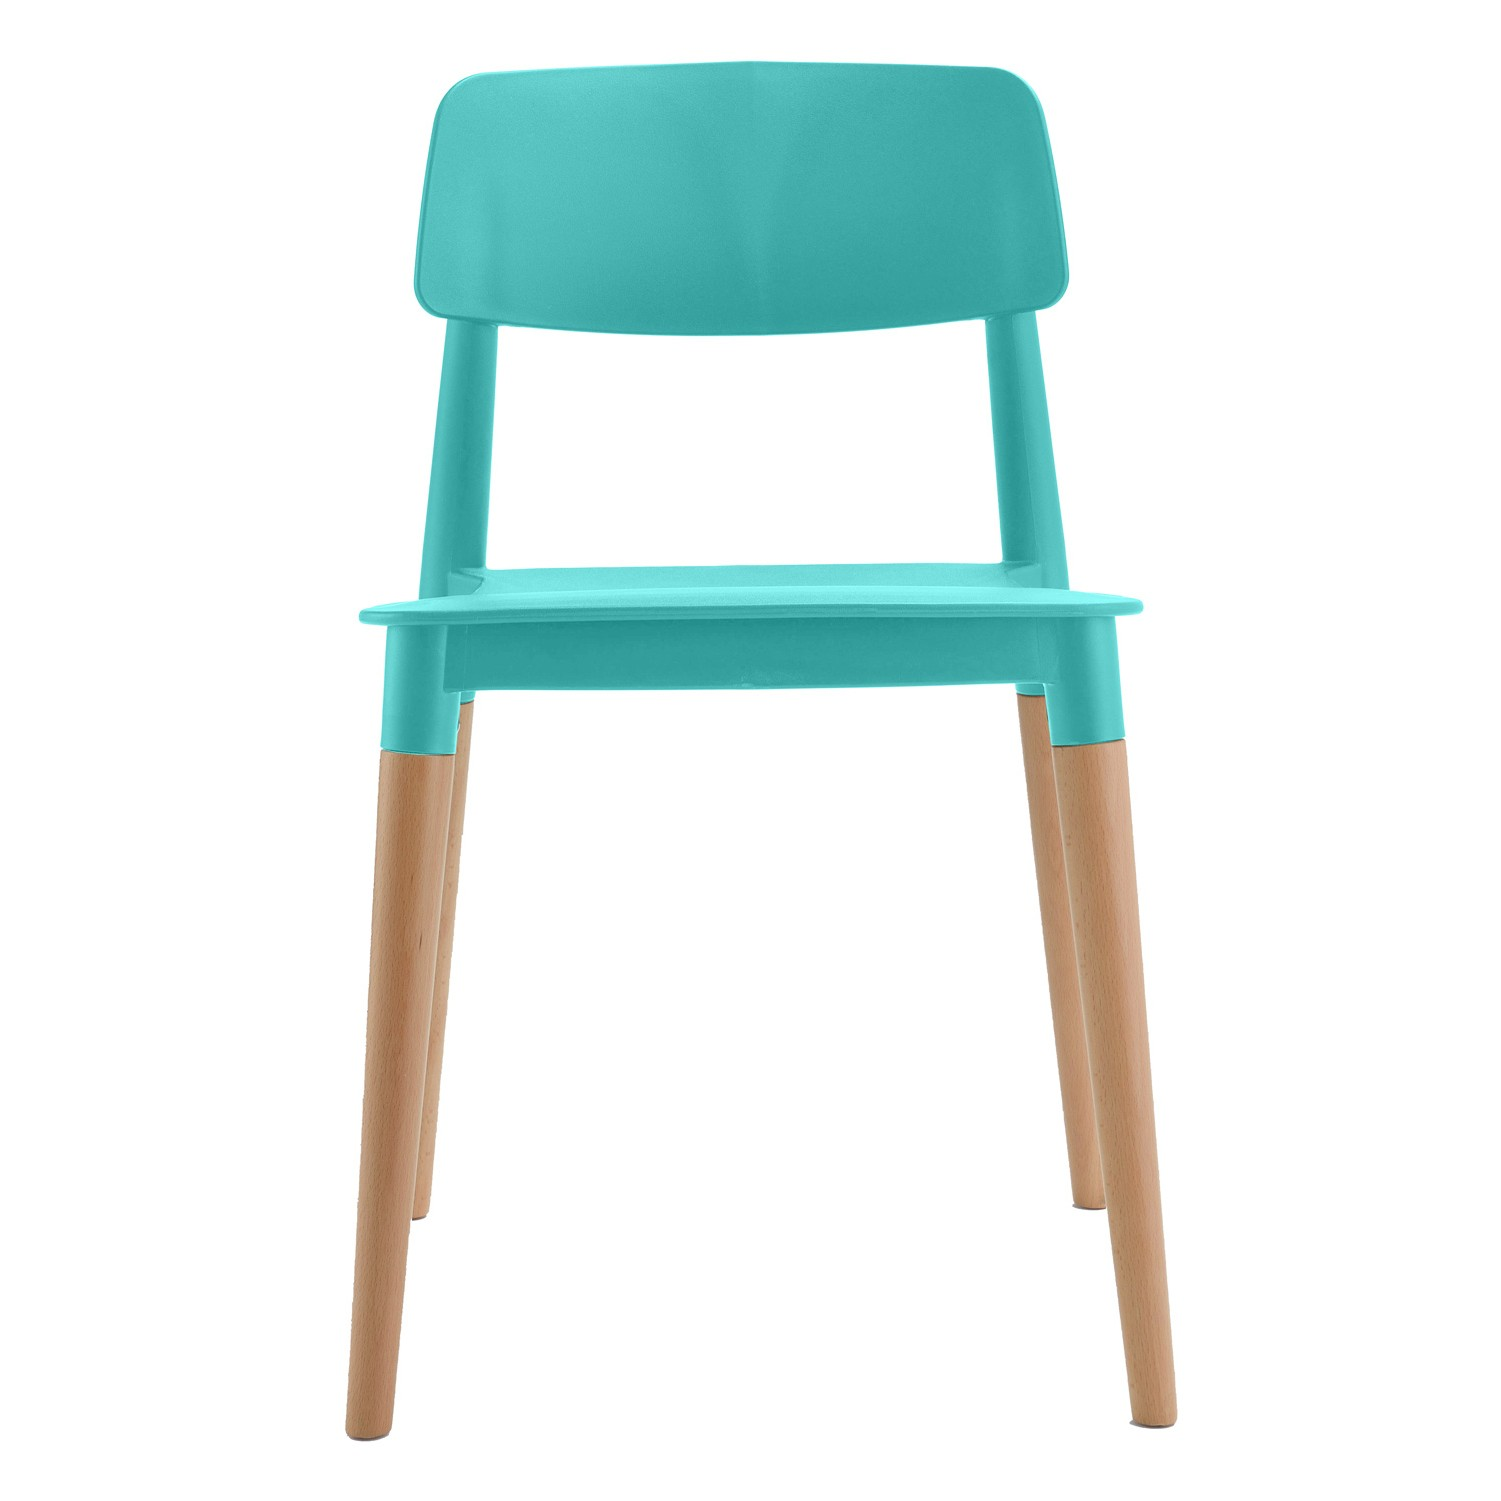 turquoise side chair fold up lawn chairs bel dining bistro cafe